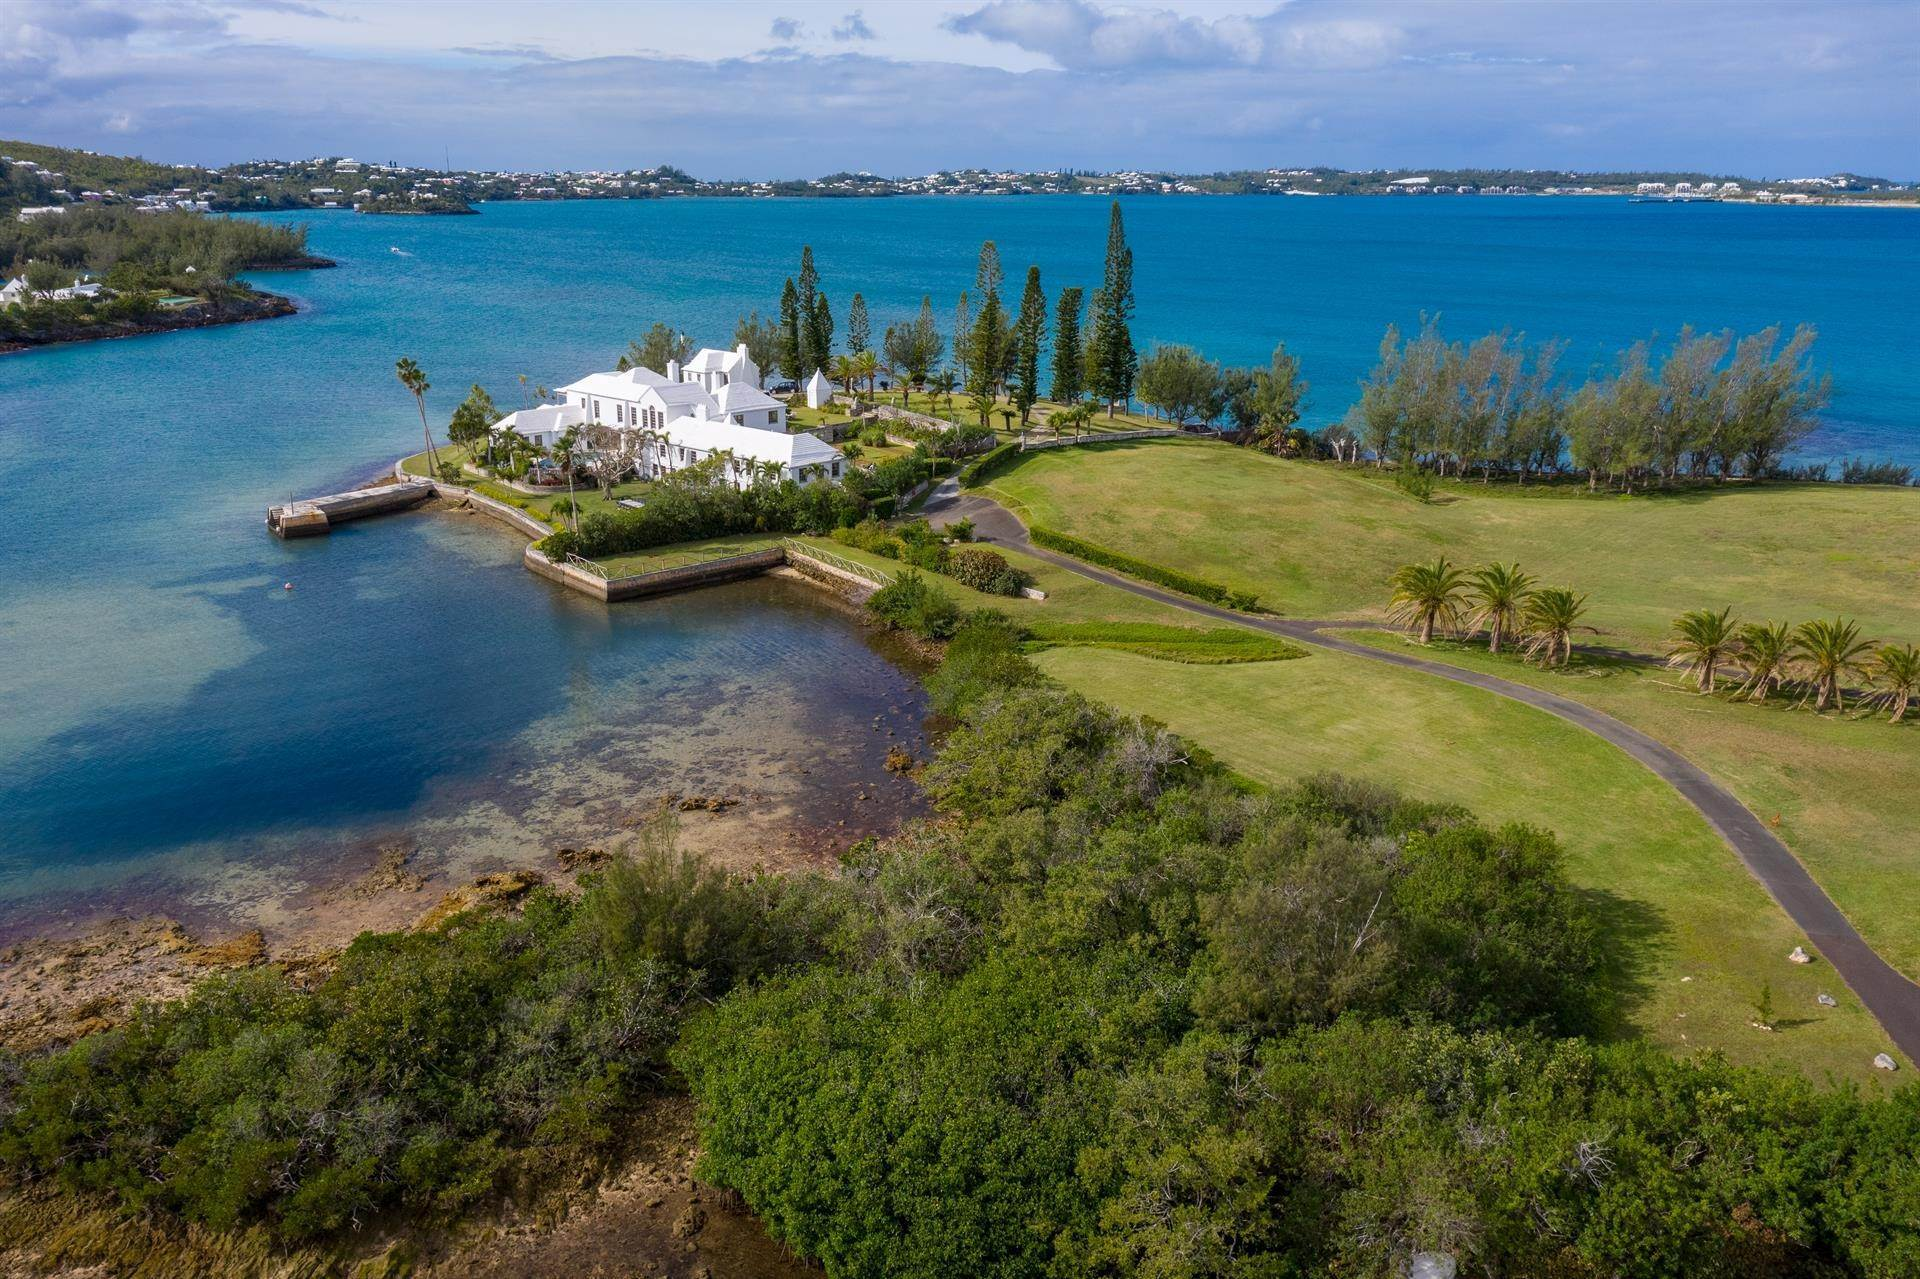 2. Địa ốc vì Bán tại Windsong House Windsong House, 15 Fairways Road,Bermuda – Sinclair Realty